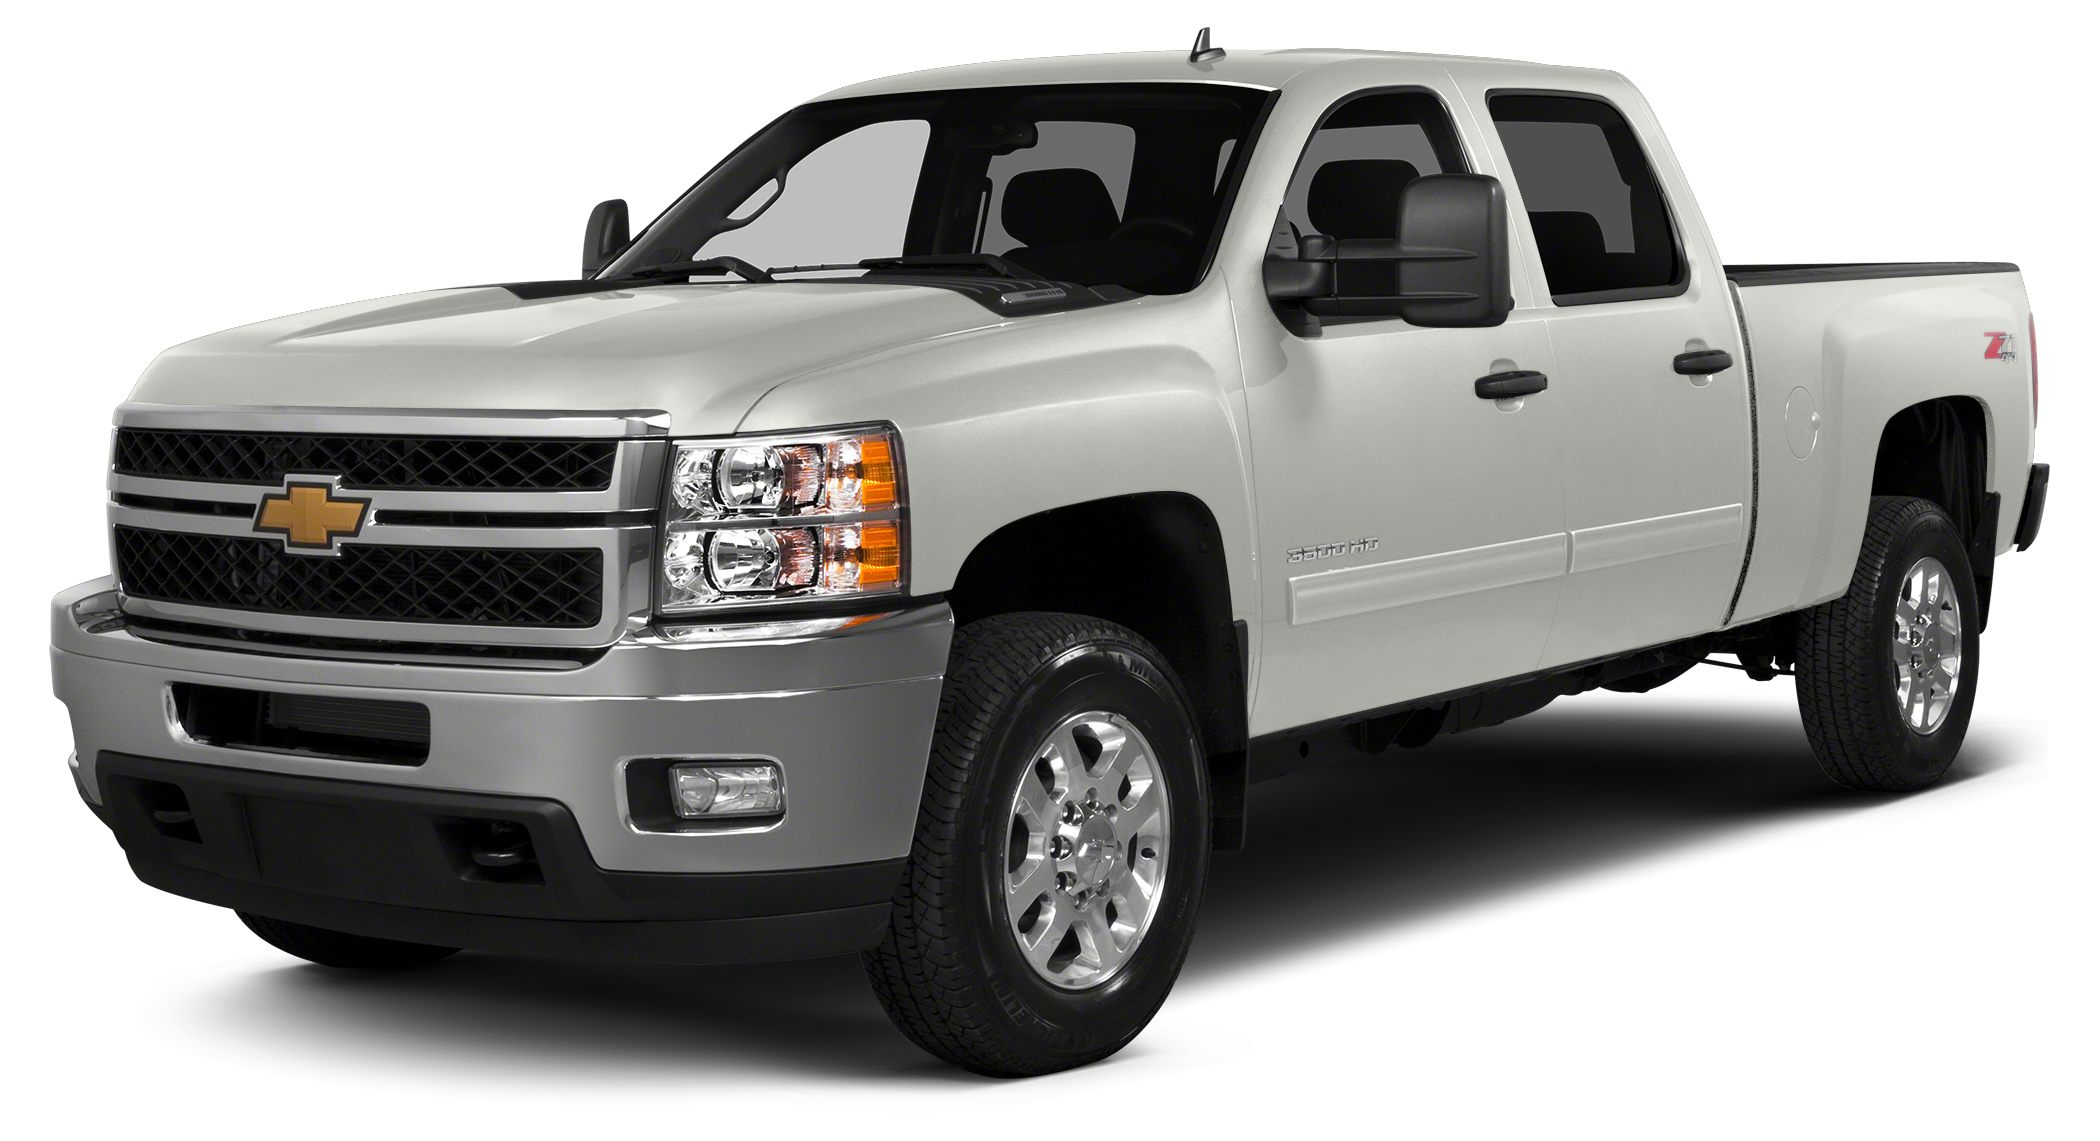 2014 Chevrolet Silverado 3500HD LTZ Cruising in this 2014 Chevrolet Silverado 3500HD LTZ is better